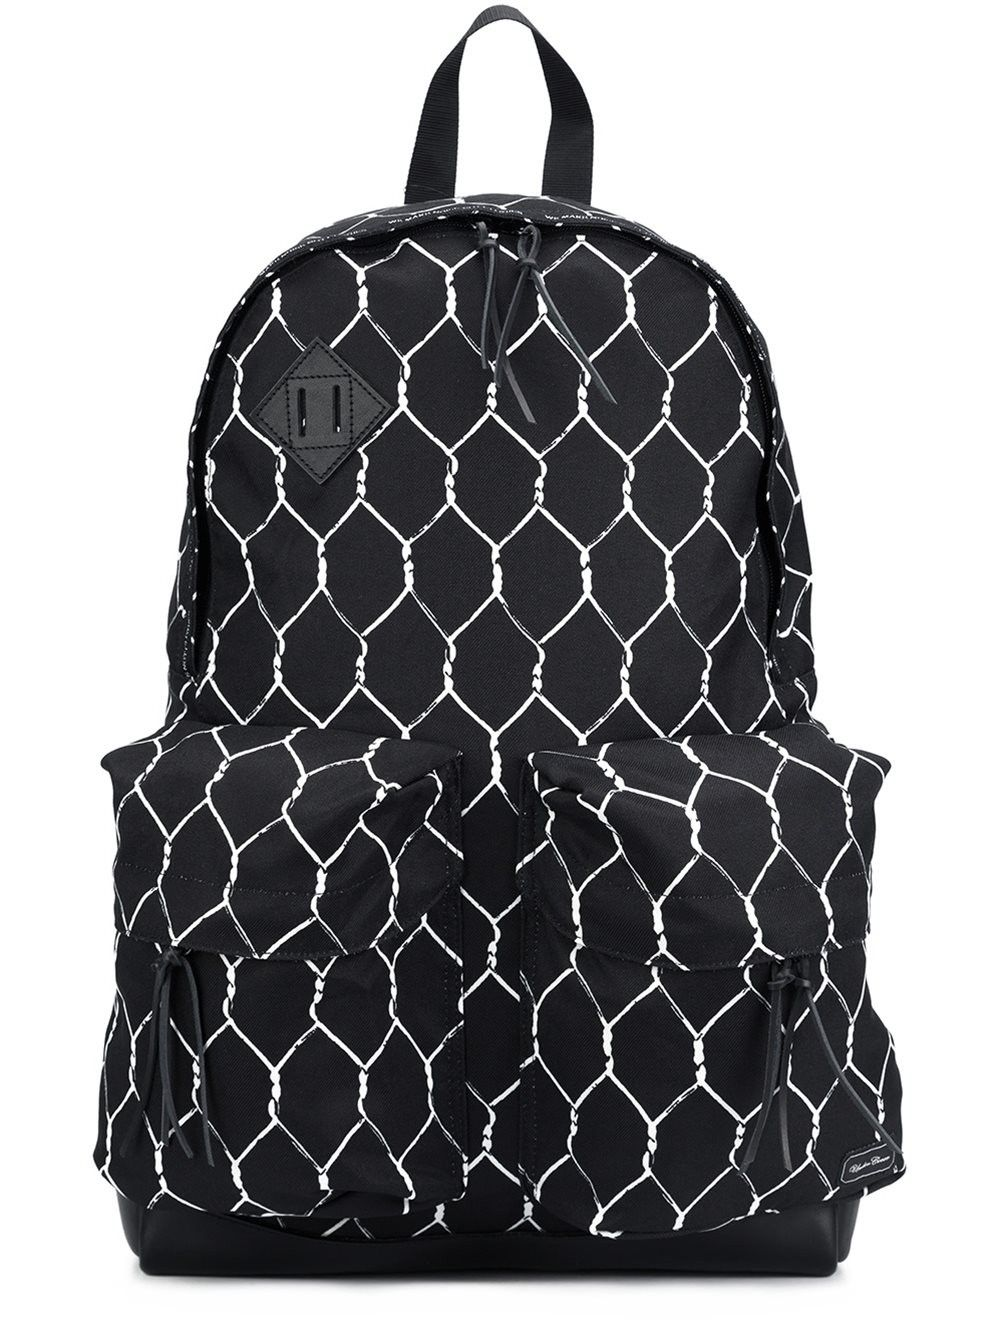 ebe0d56504 UNDERCOVER  Undercover x Porter  fence print backpack.  undercover  bags   leather  lining  polyester  nylon  backpacks